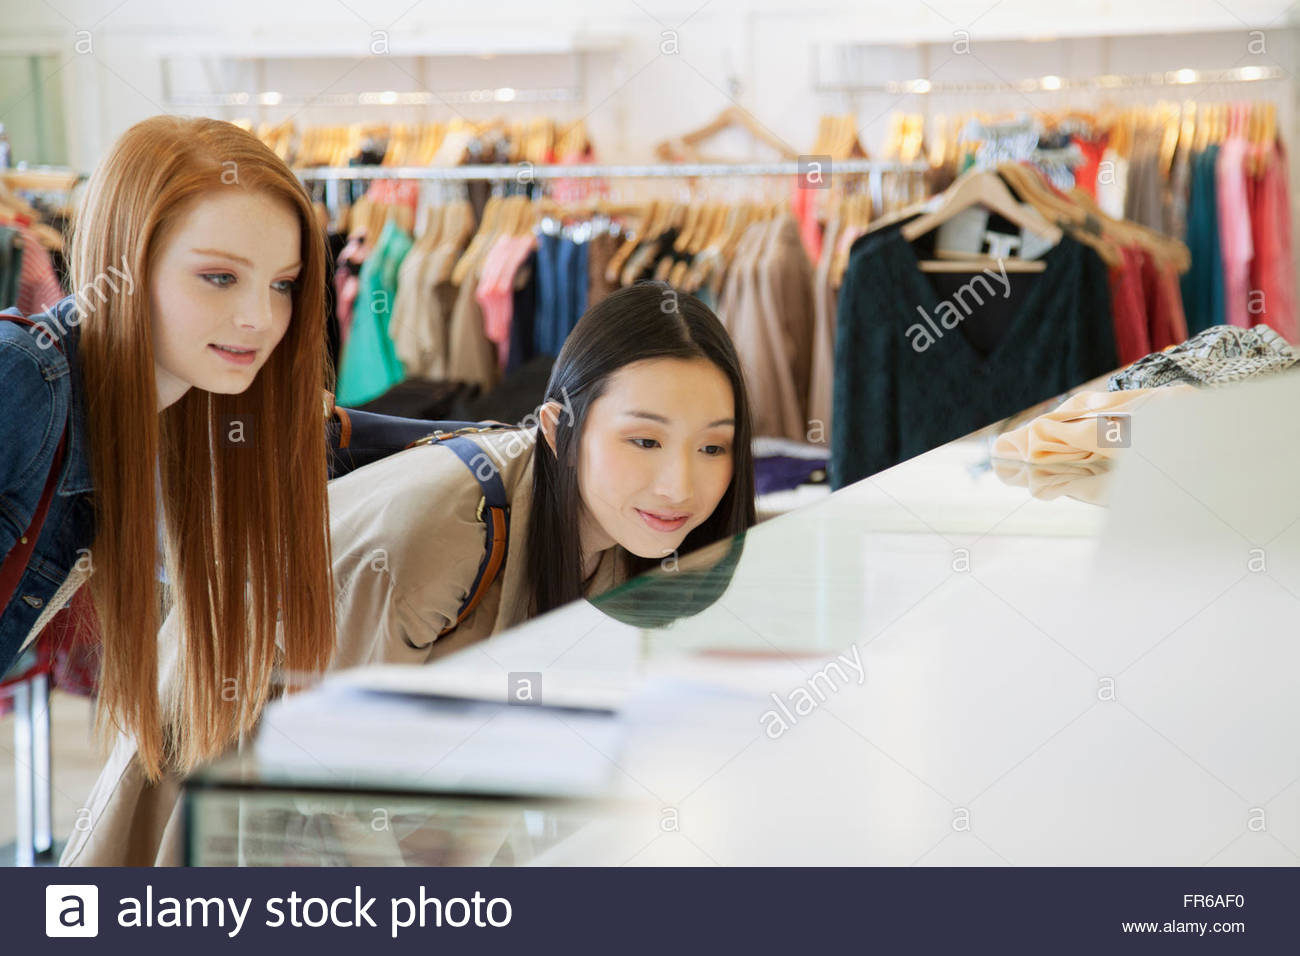 girlfriends shopping in trendy clothing store - Stock Image